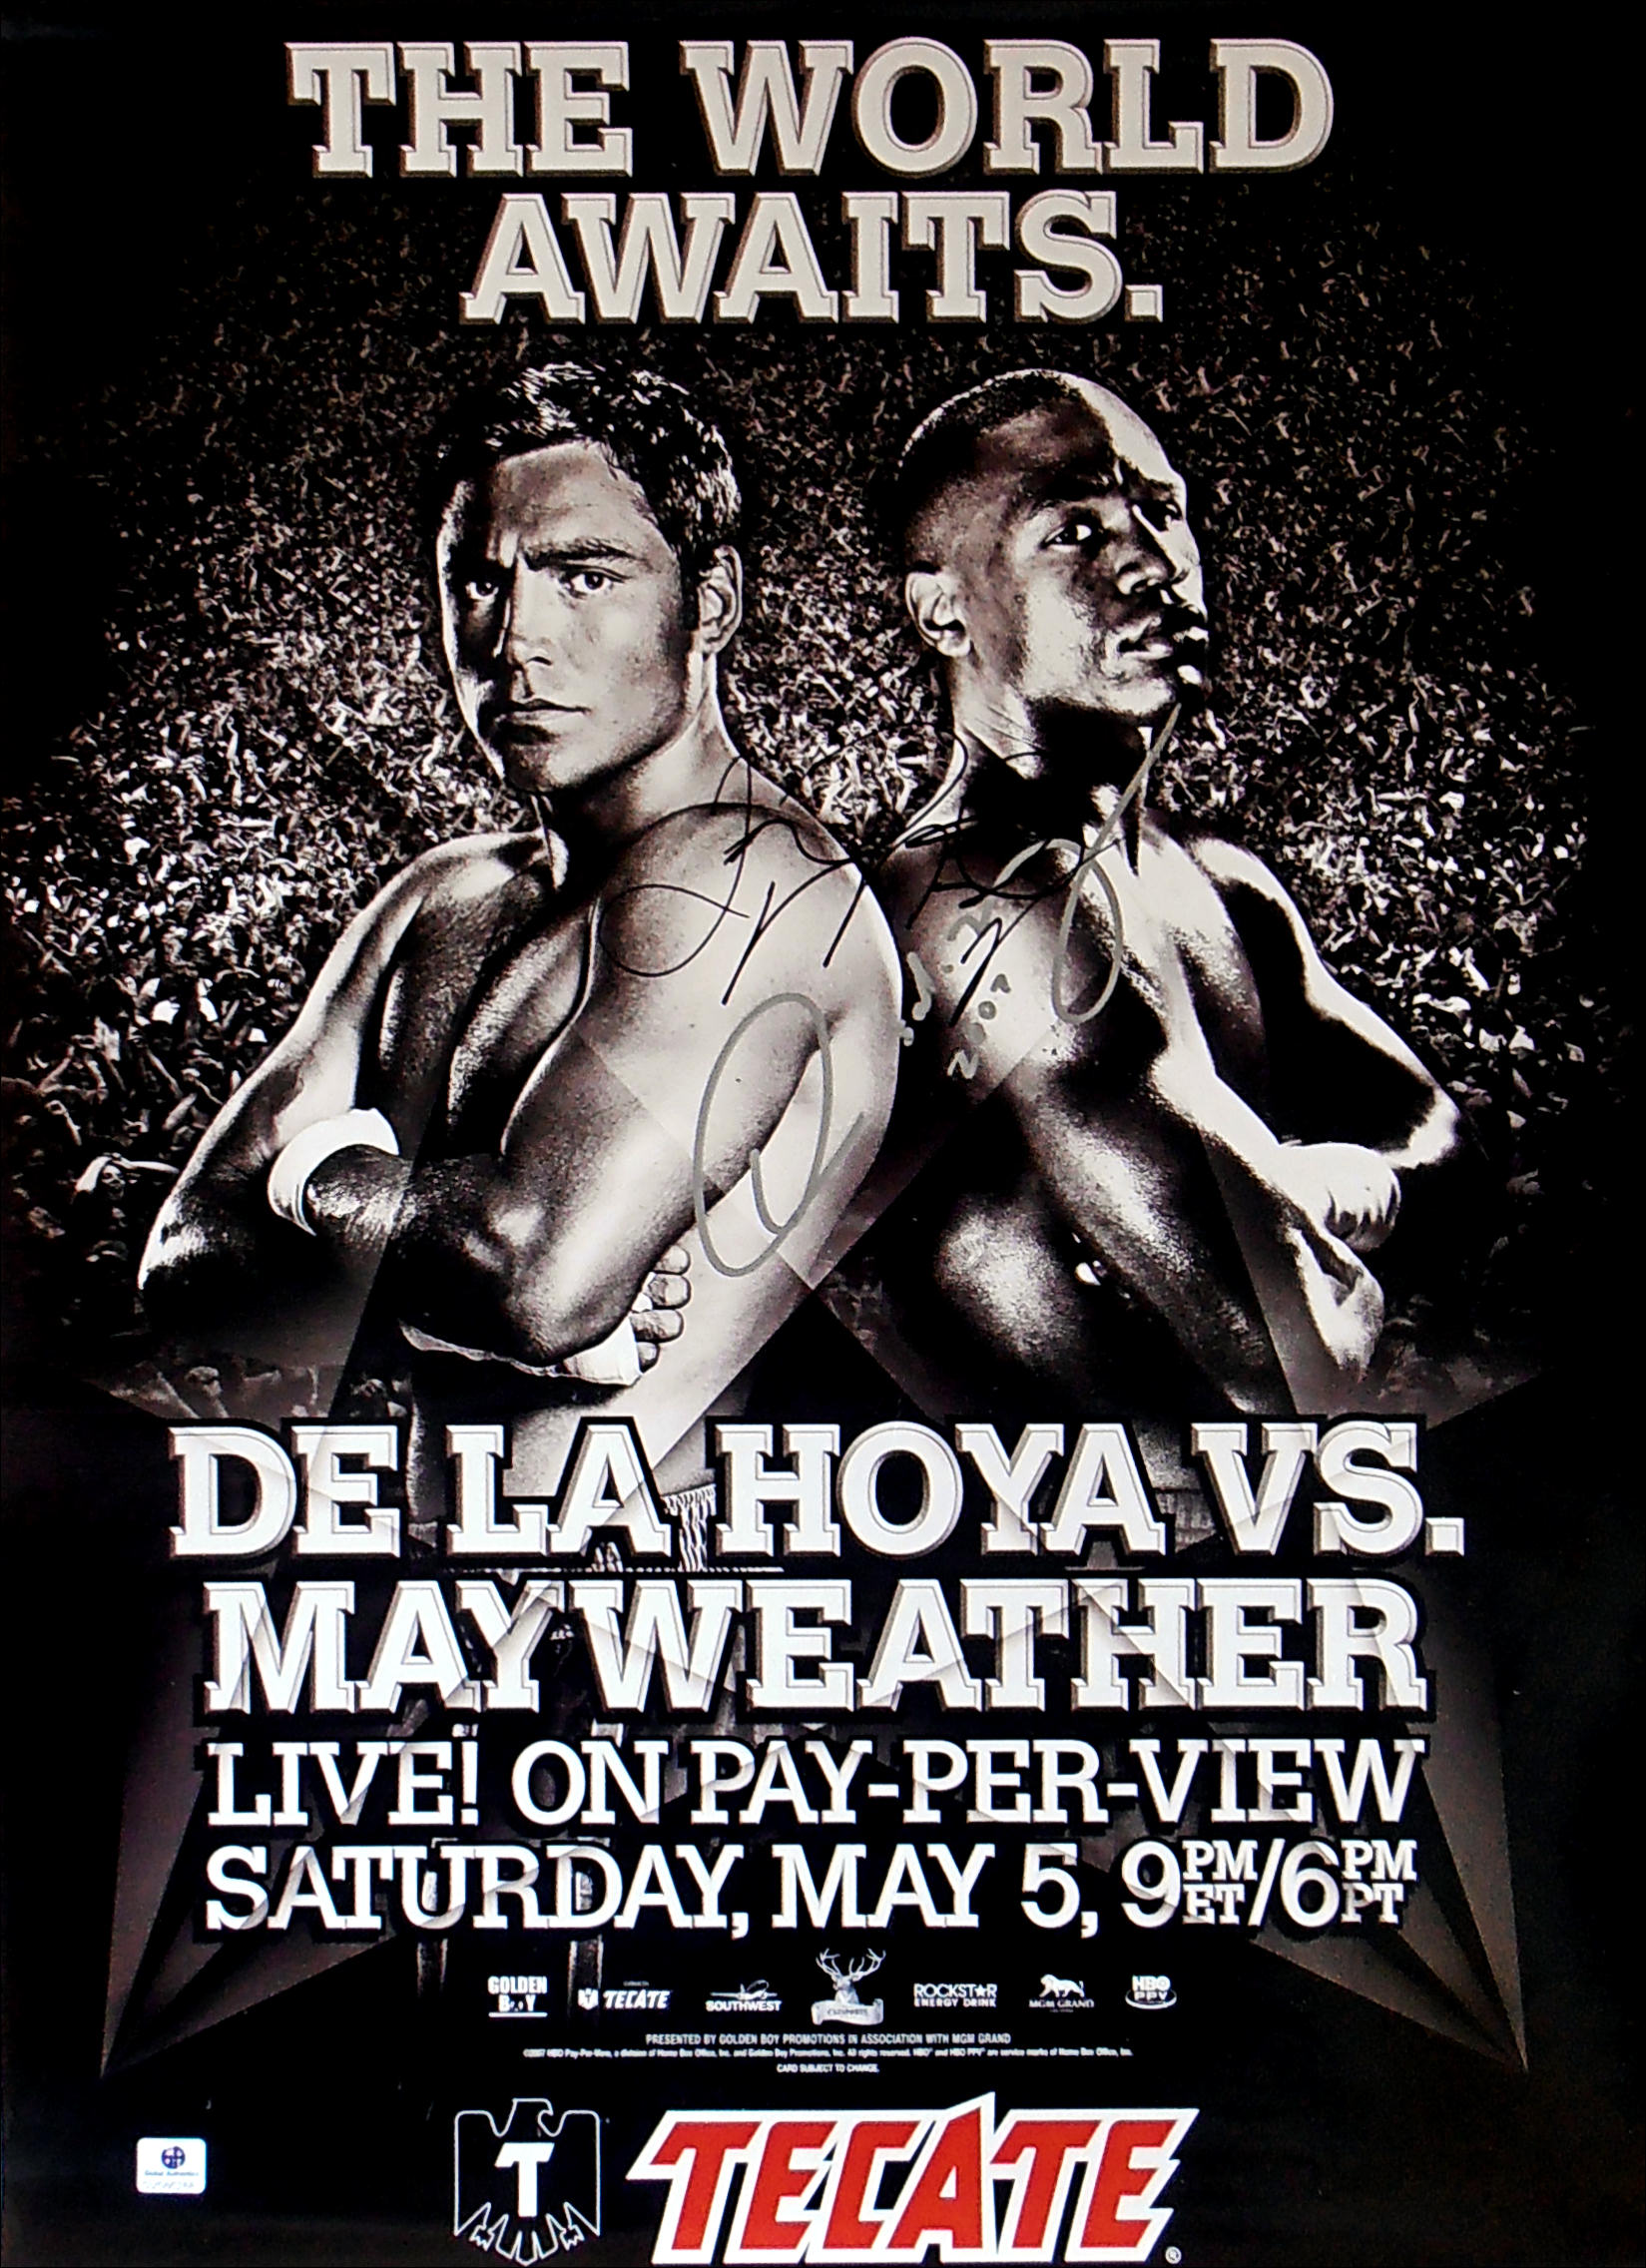 T Mobile Arena Suites in addition Resume Mayweather Vs Pacquiao further 1188 Floyd Mayweather Jr Vs Conor Mcgregor together with Floyd Mayweather The Money May Dance additionally Wba Refuse To Sanction Floyd Mayweather Vs Conor Mcgregor. on oscar de la hoya letter to mayweather